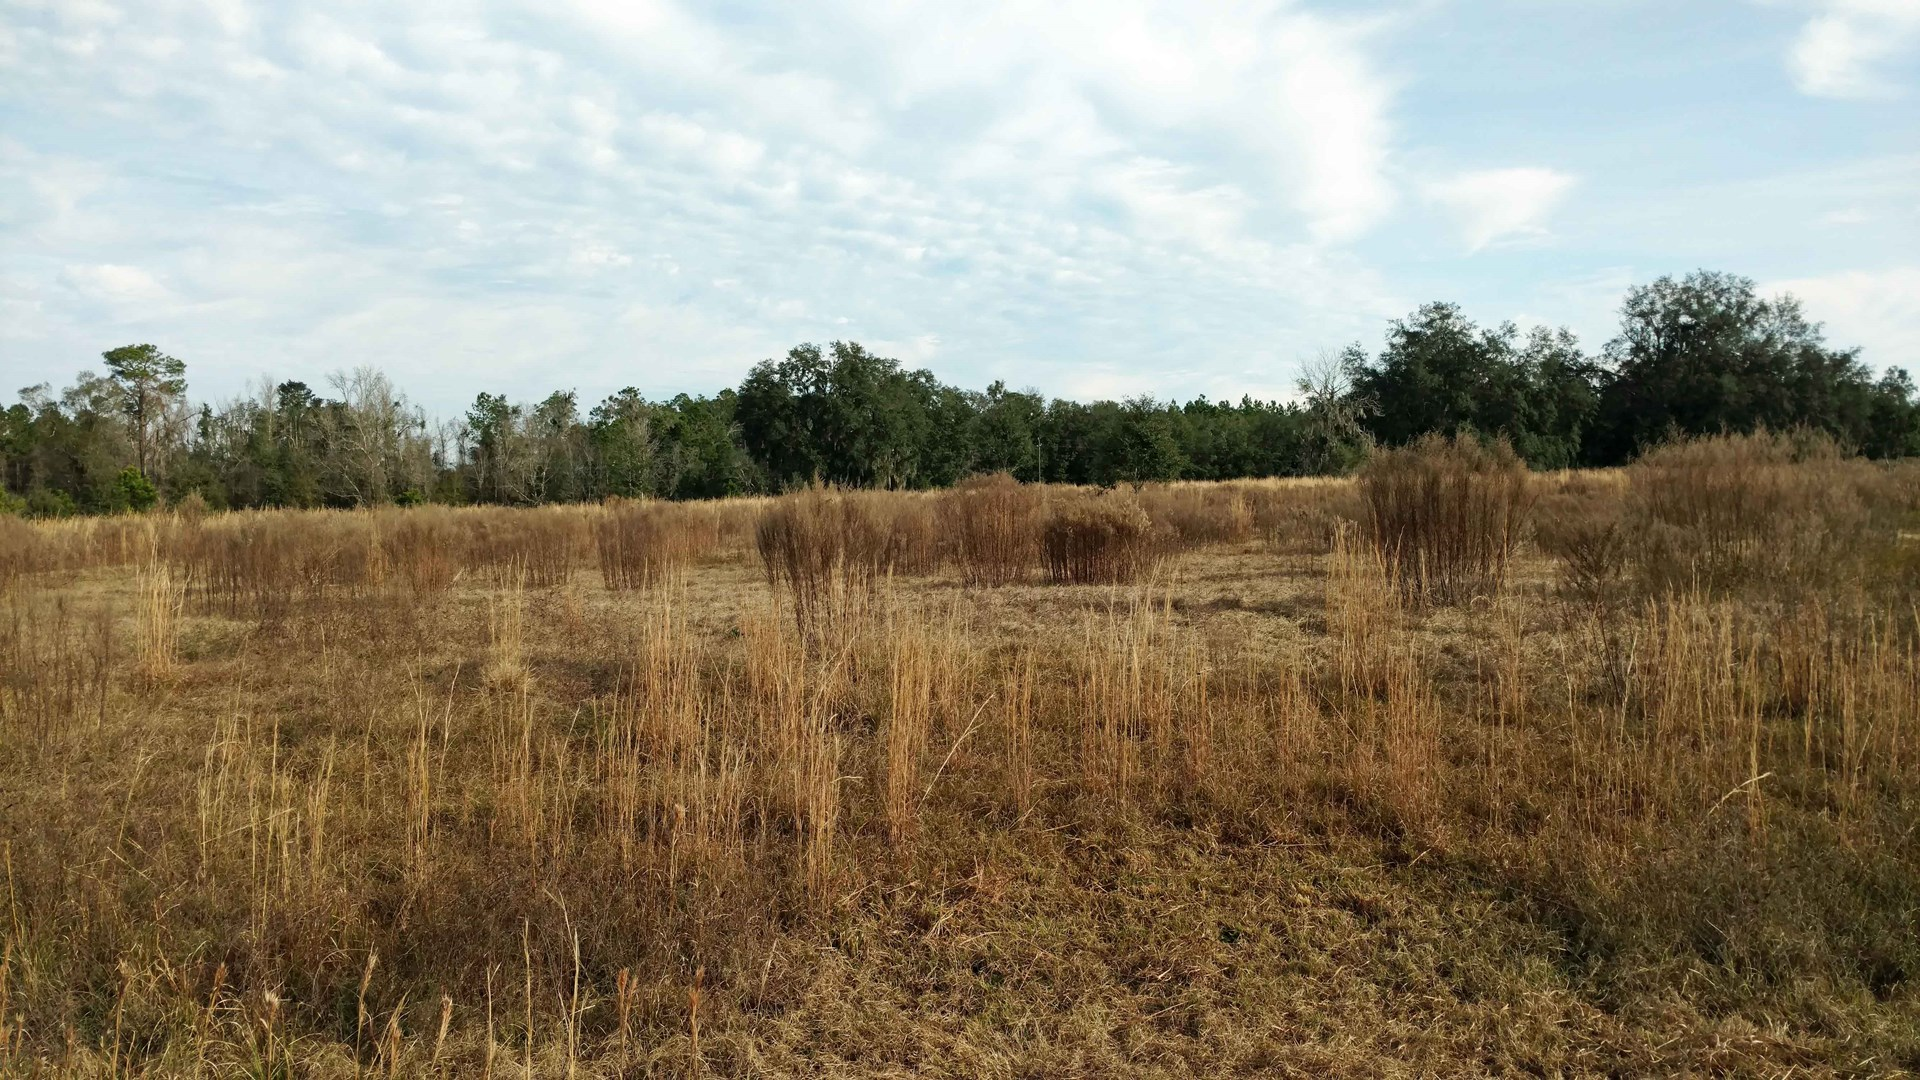 4.8 ACRES FOR SALE IN LAKE CITY, FLORIDA